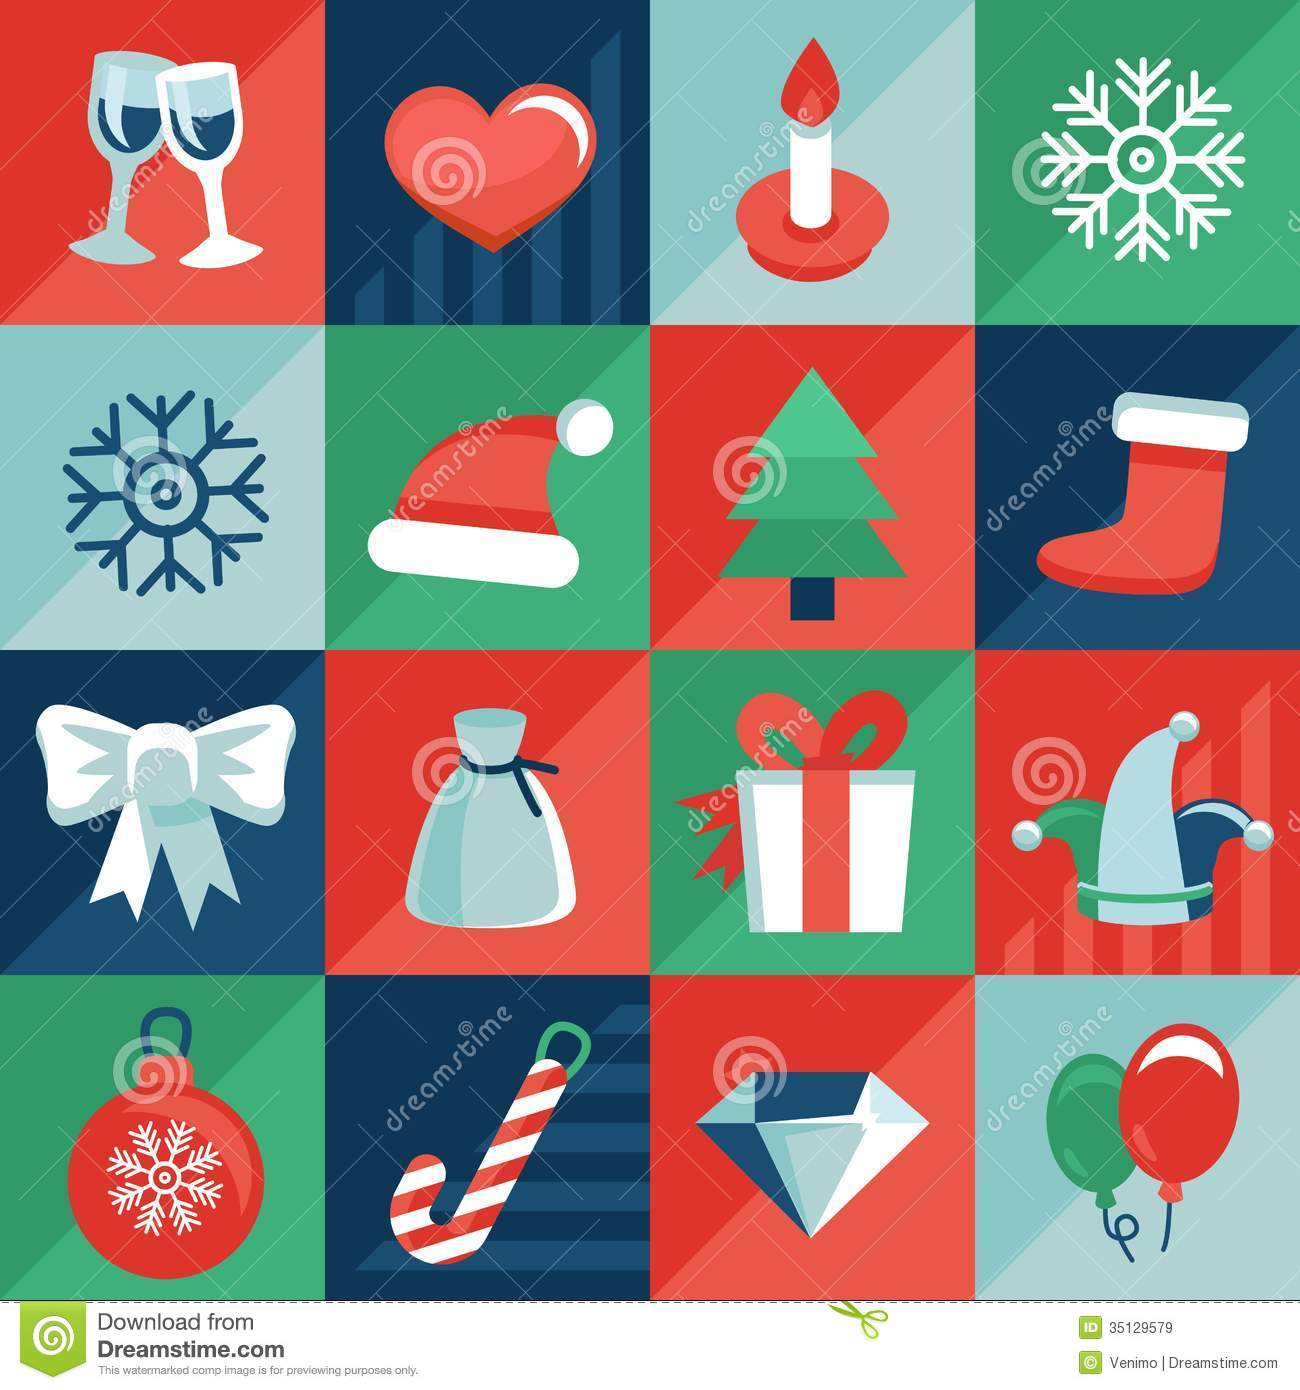 Vector christmas icons stock vector illustration of claus 35129579 vector christmas icons claus graphic m4hsunfo Image collections